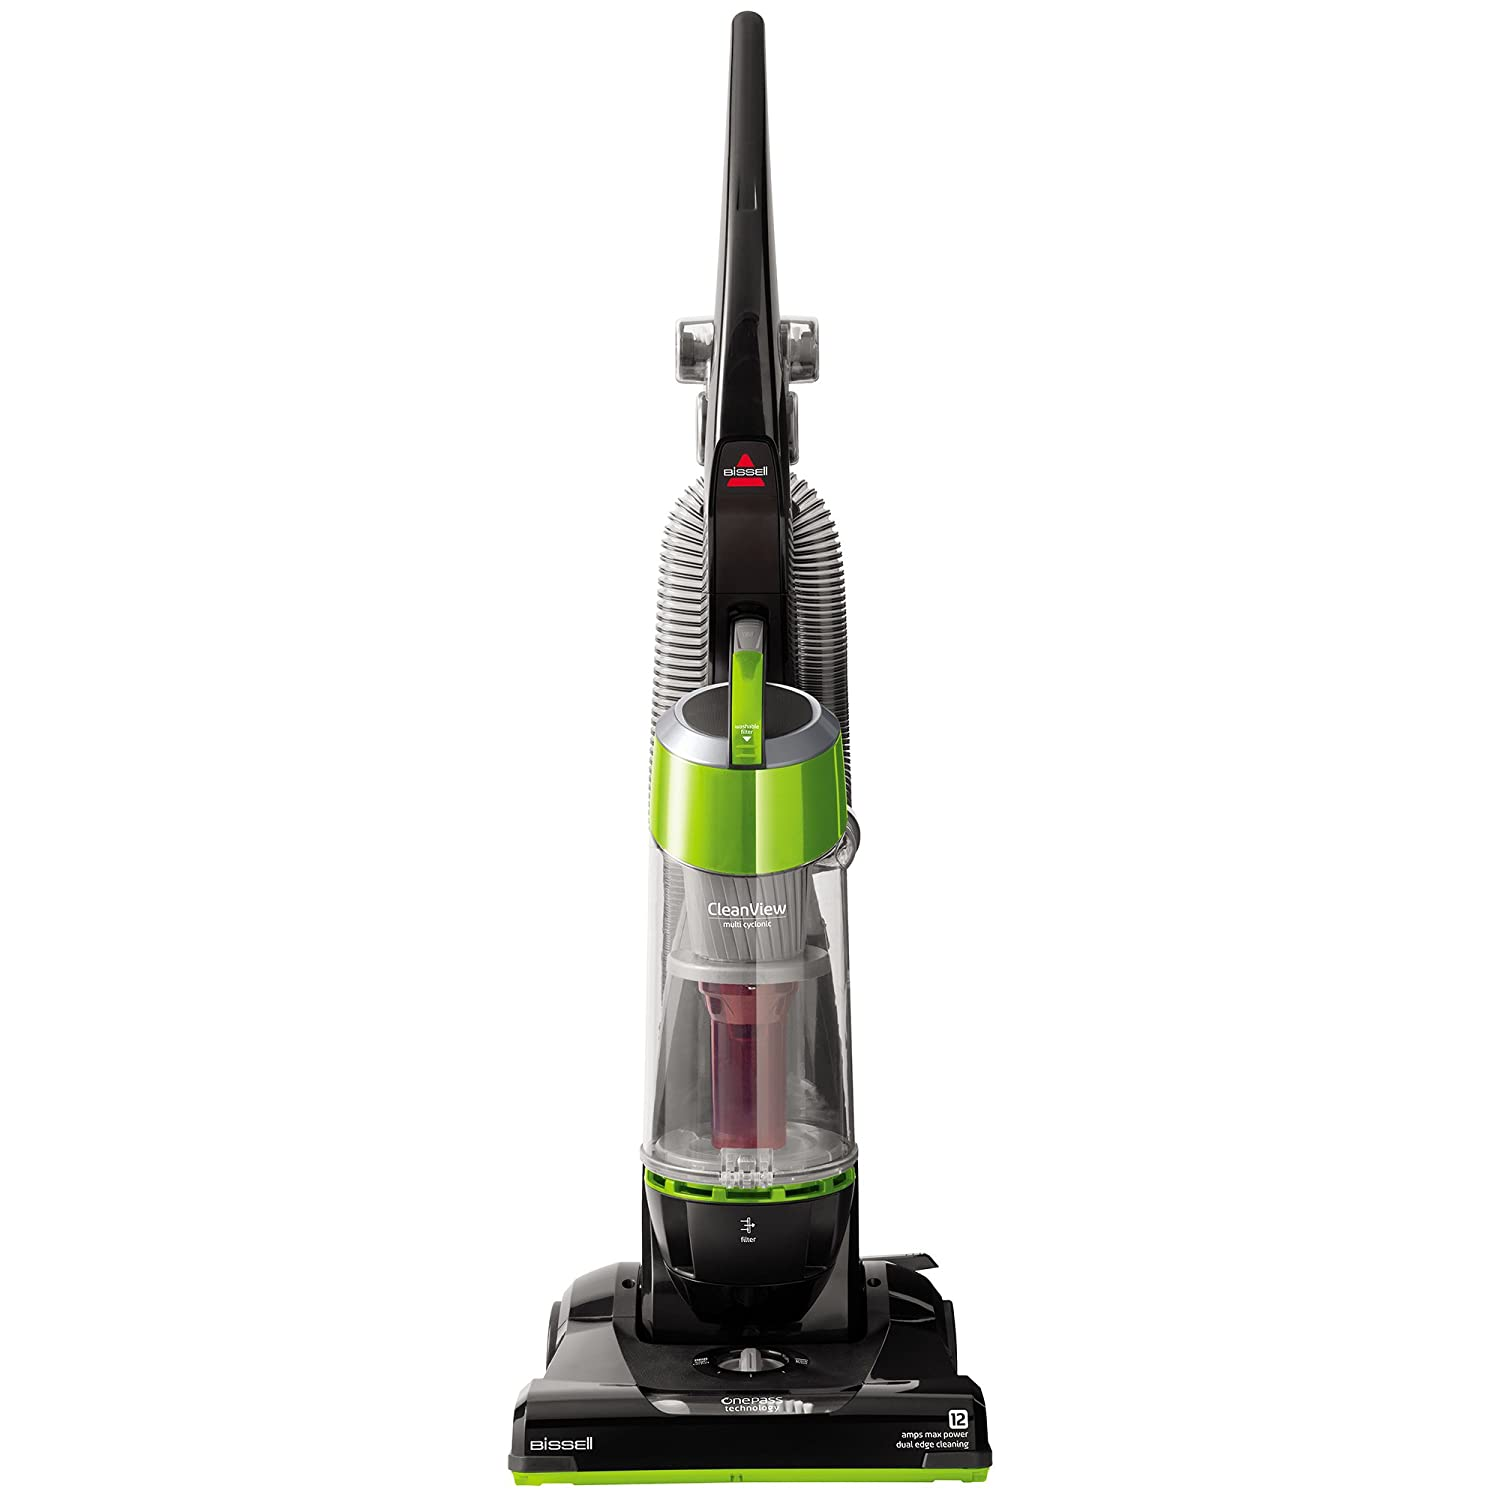 Bissell CleanView Bagless Upright Vacuum, Green, 95957